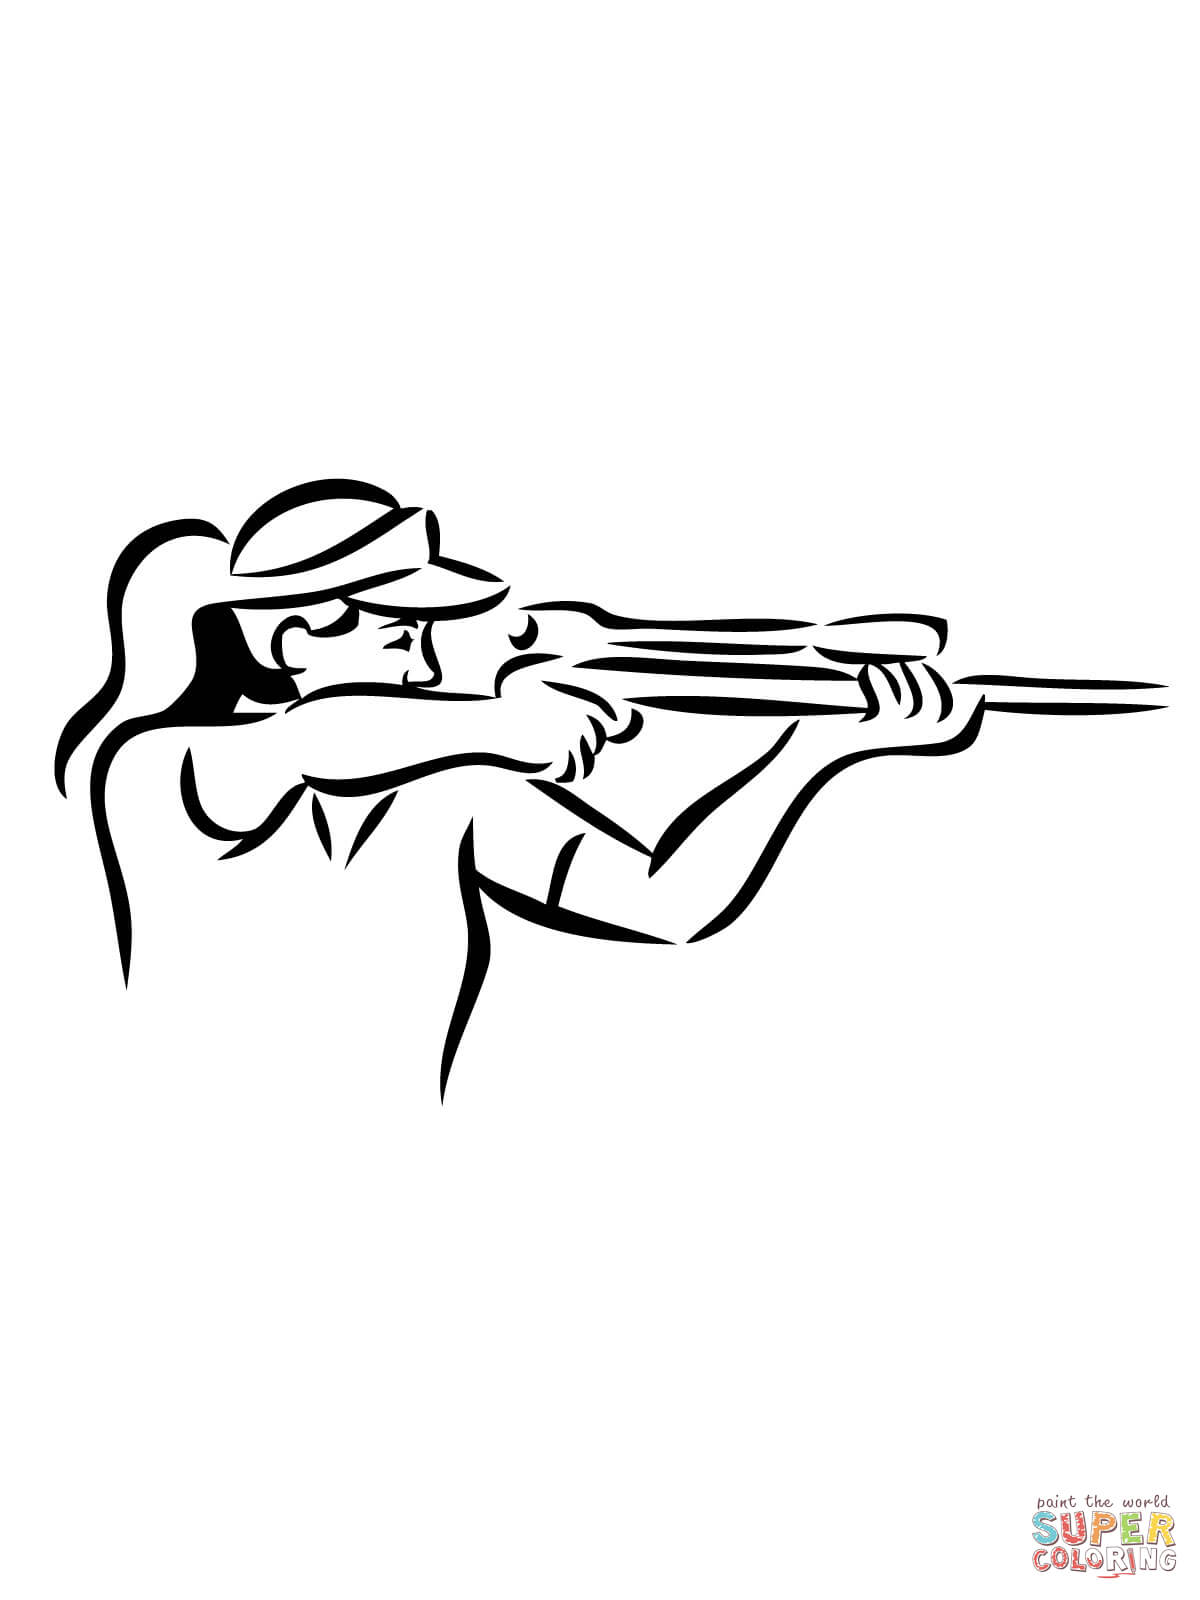 1200x1600 Shooting Sniper Rifle Coloring Page Free Printable Coloring Pages